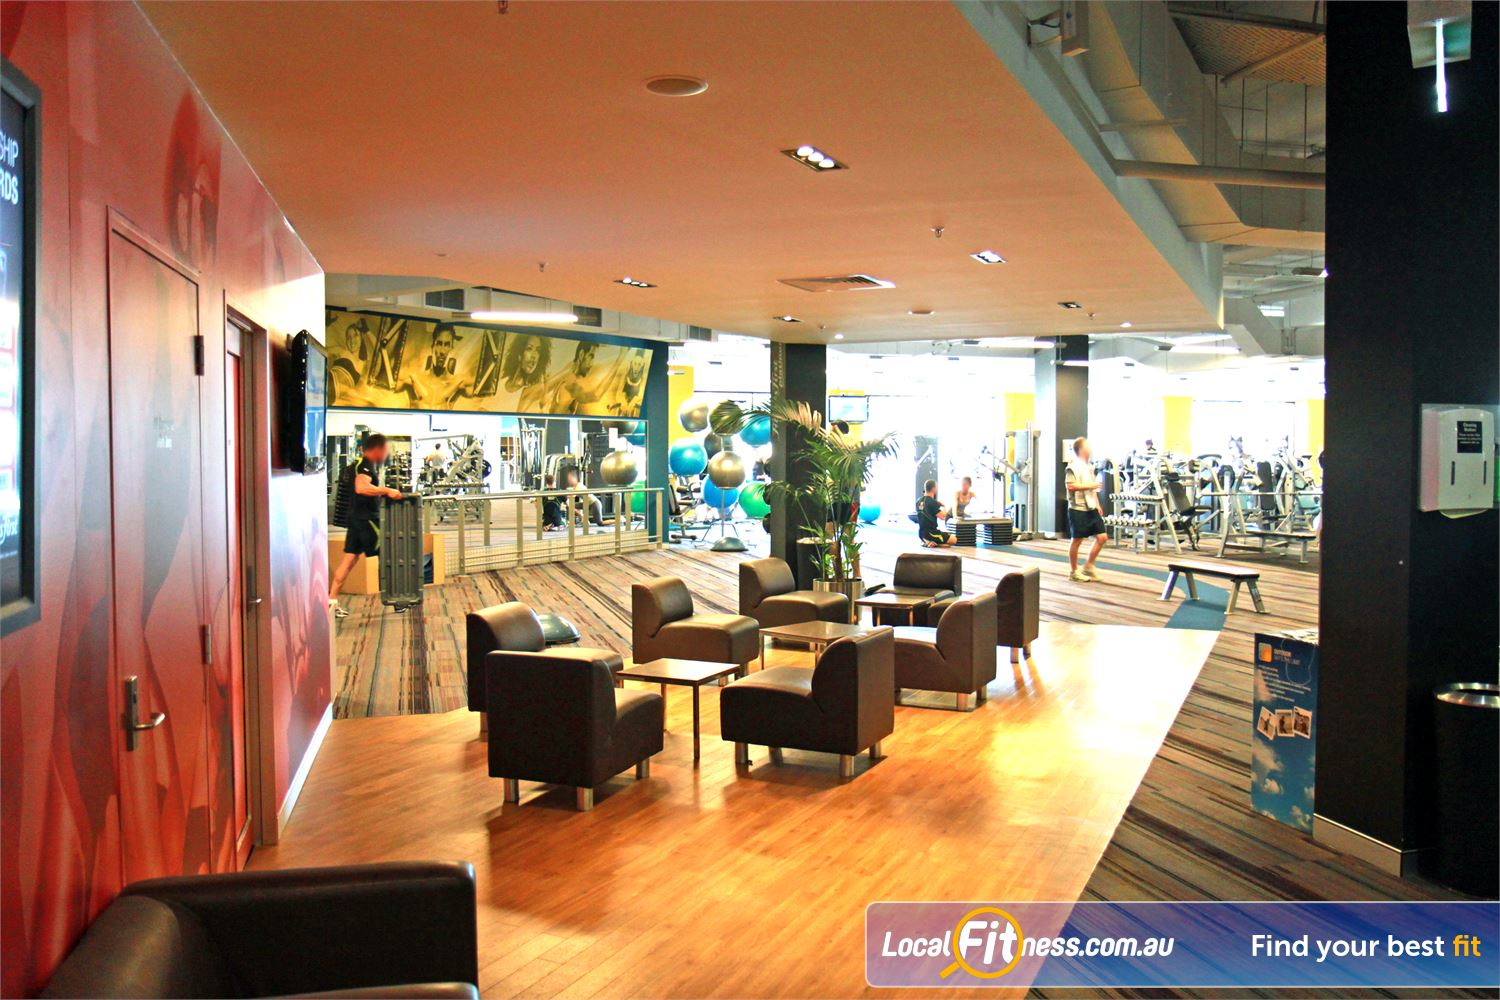 Goodlife Health Clubs Near Jolimont A comfortable cafe style ambiance for members and guests.